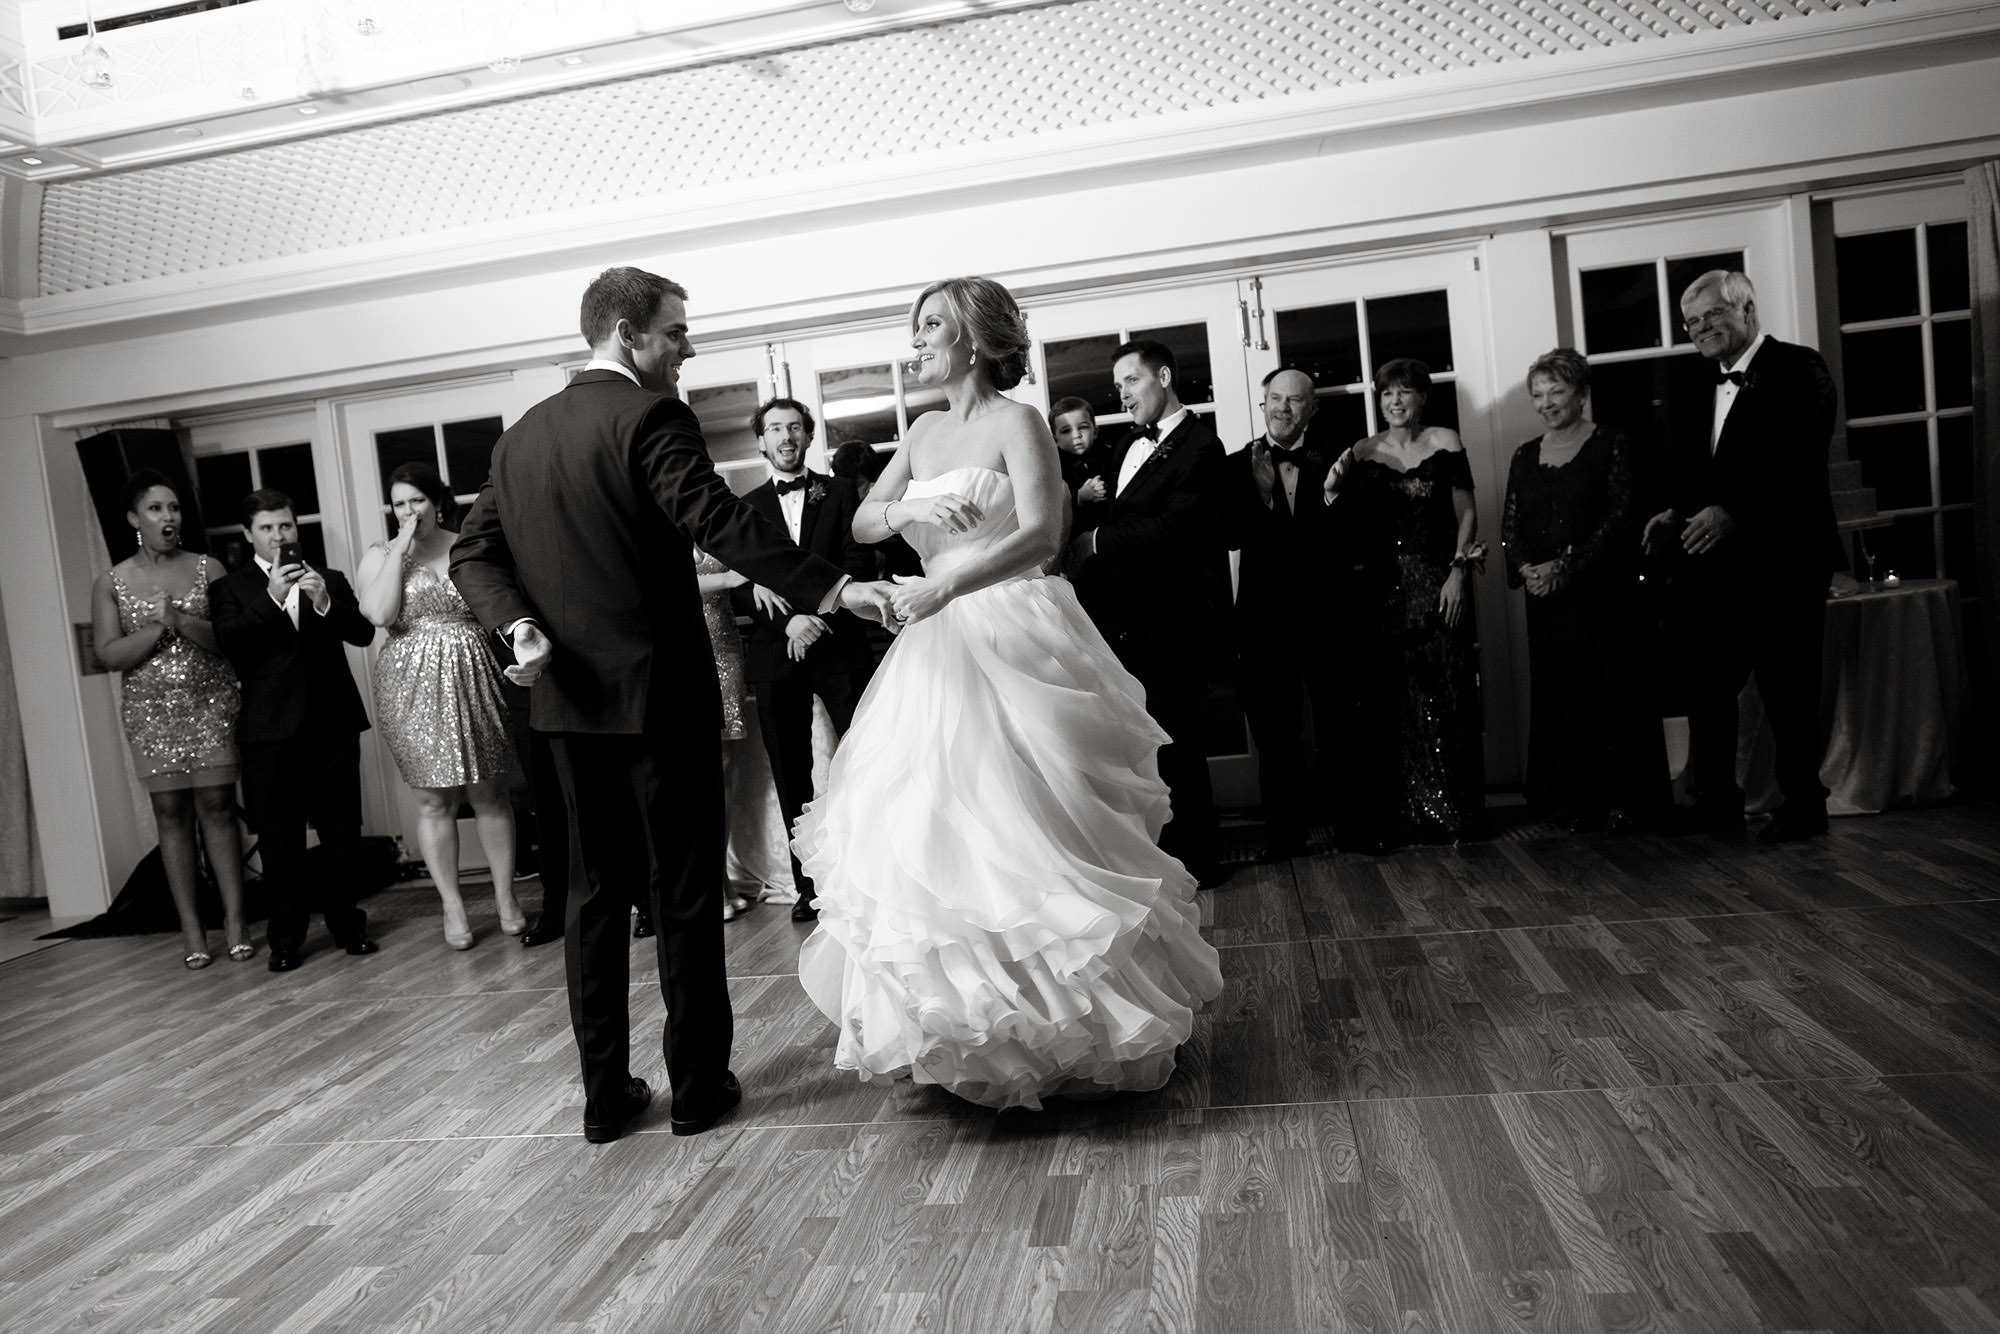 The bride and groom enjoy their first dance during the Hay Adams DC Wedding reception.